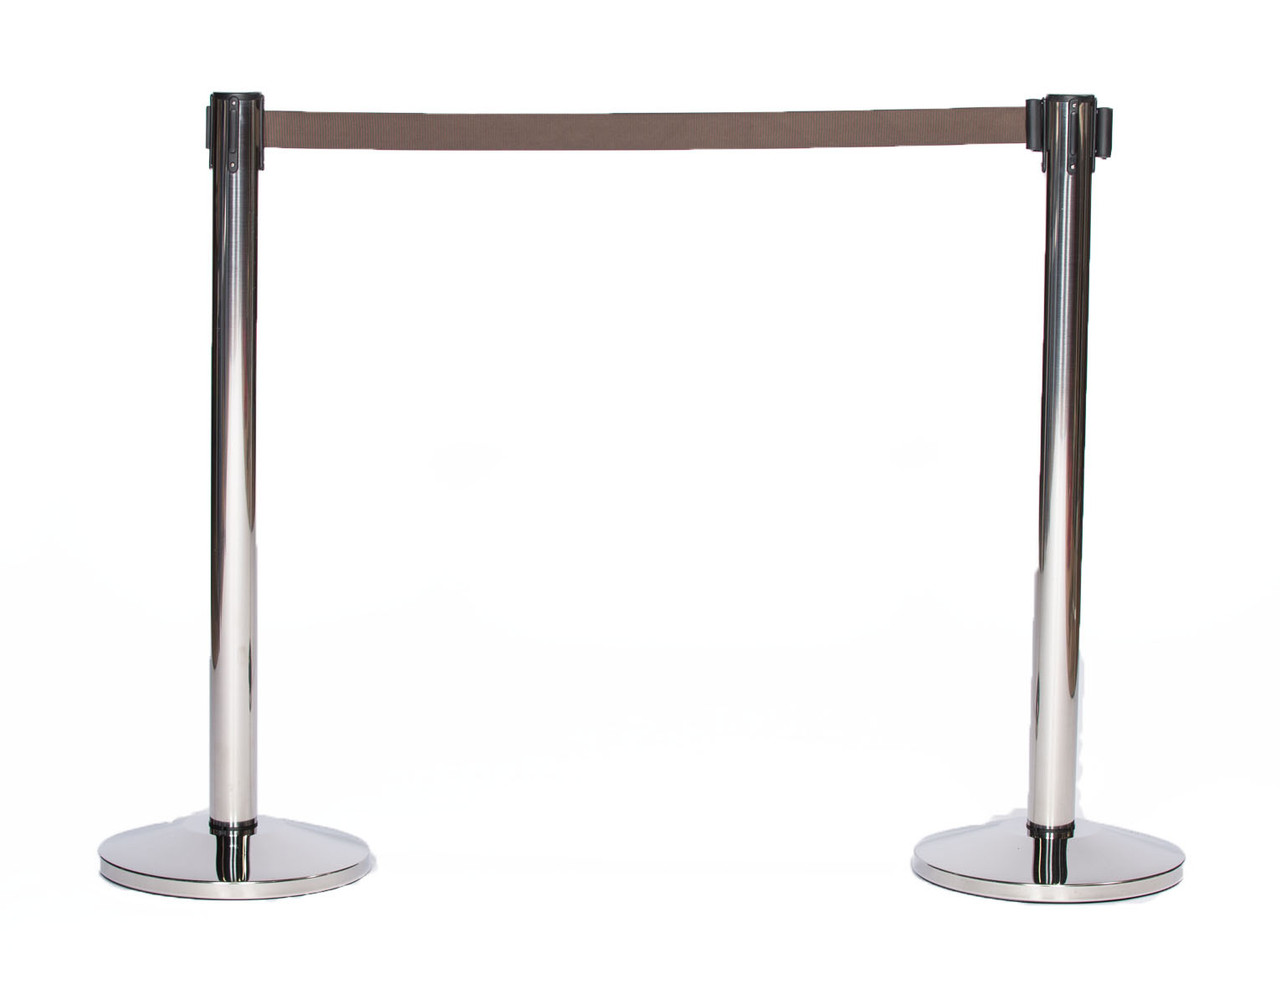 Best Reviewed Pair of Chrome or Stainless Retractable Belt Stanchions with a 10' Brown Belt